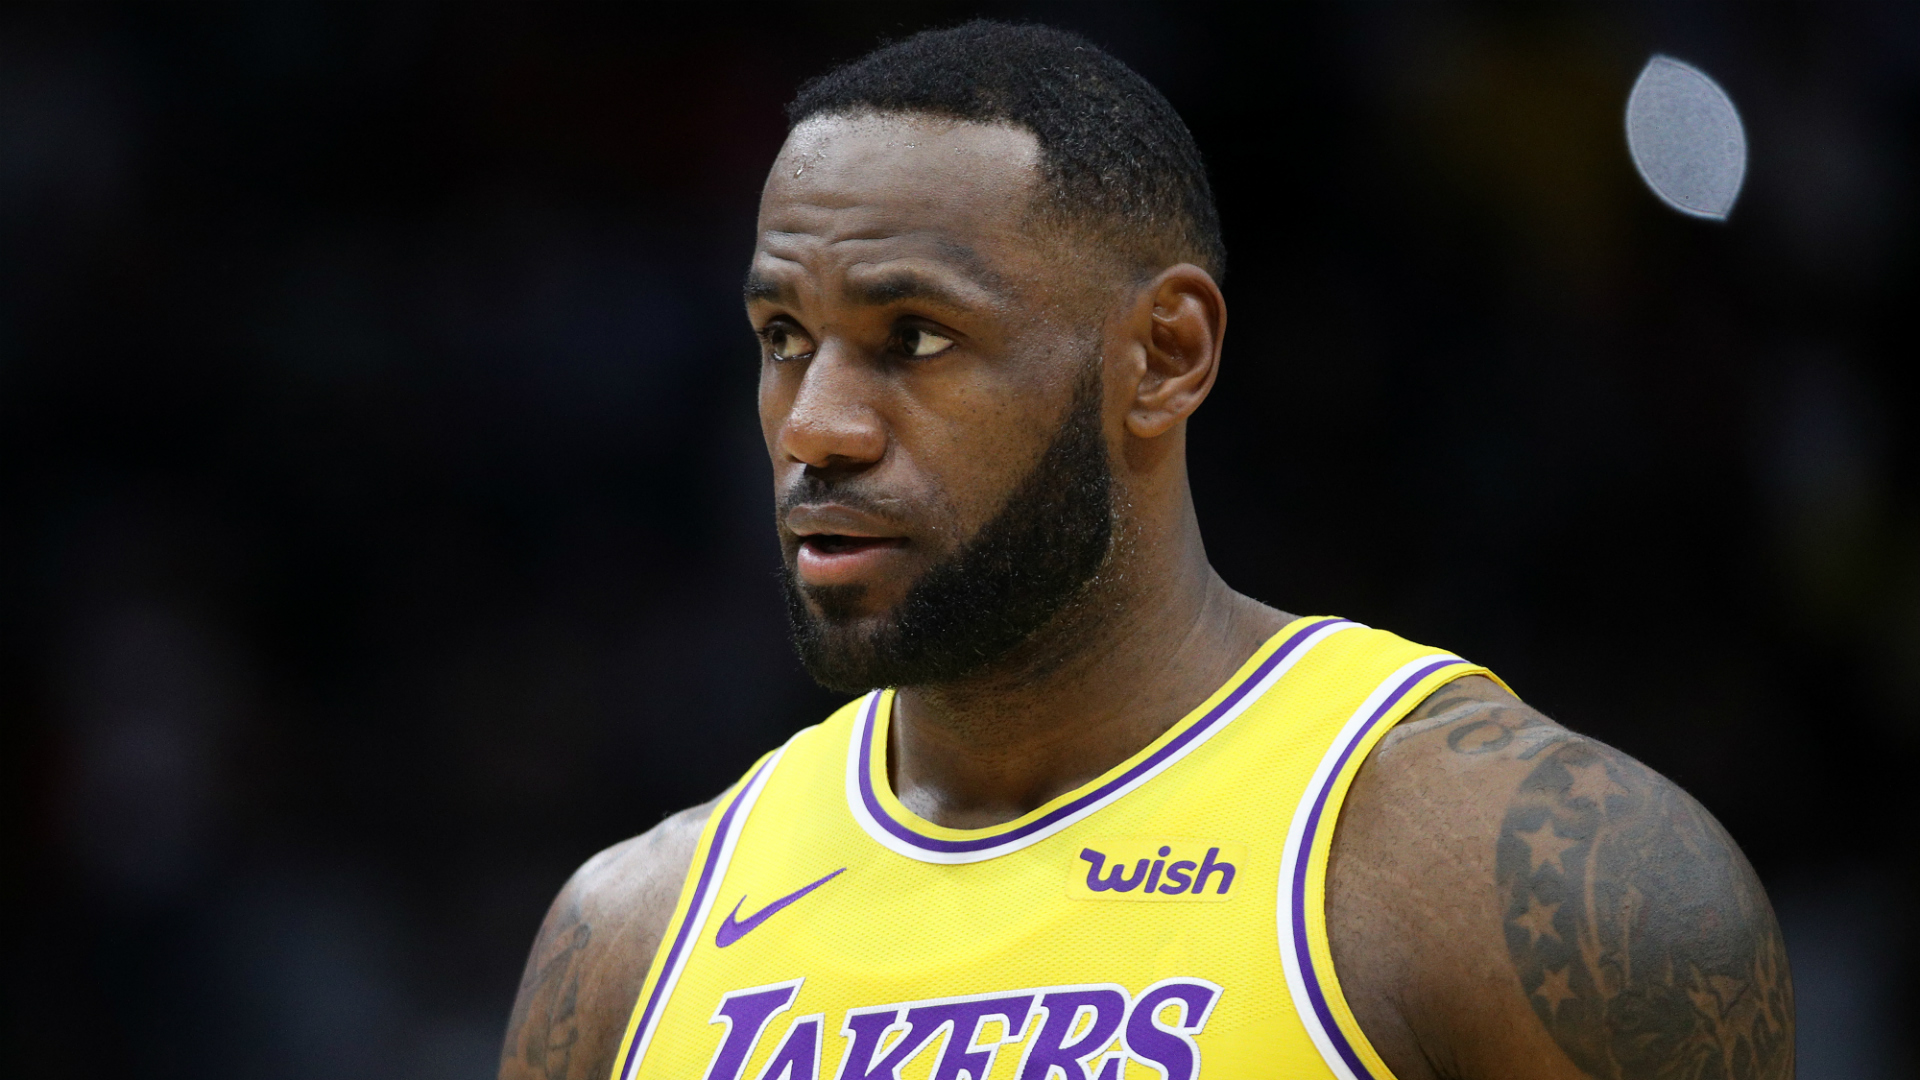 LeBron James injury update: Christmas Day in doubt as Lakers